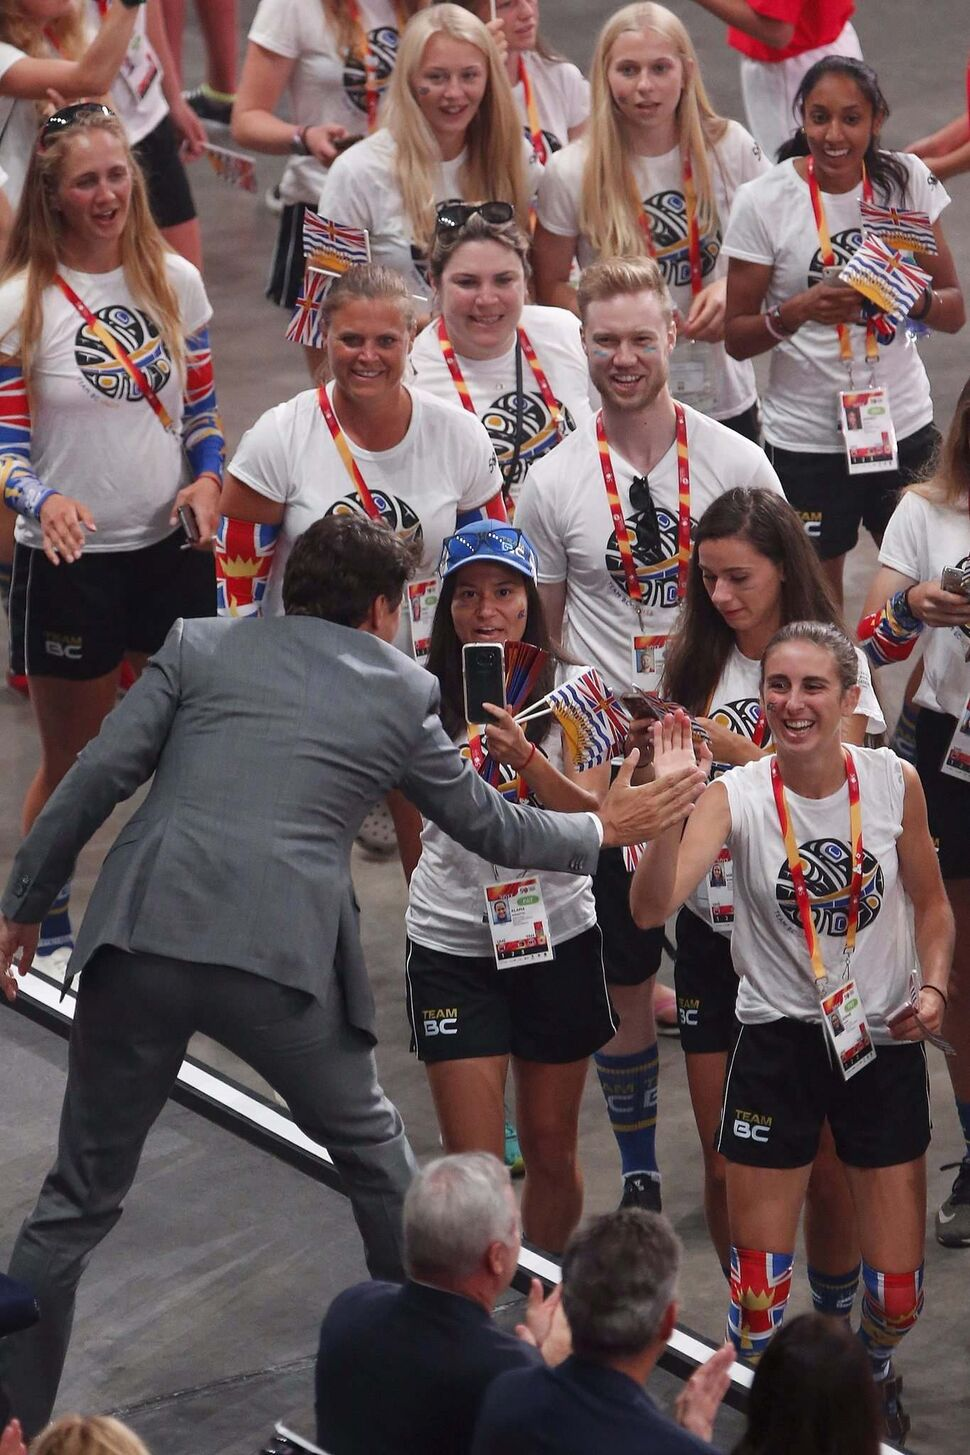 Prime Minister Justin Trudeau high-fives athletes. (JOHN WOODS / THE CANADIAN PRESS)